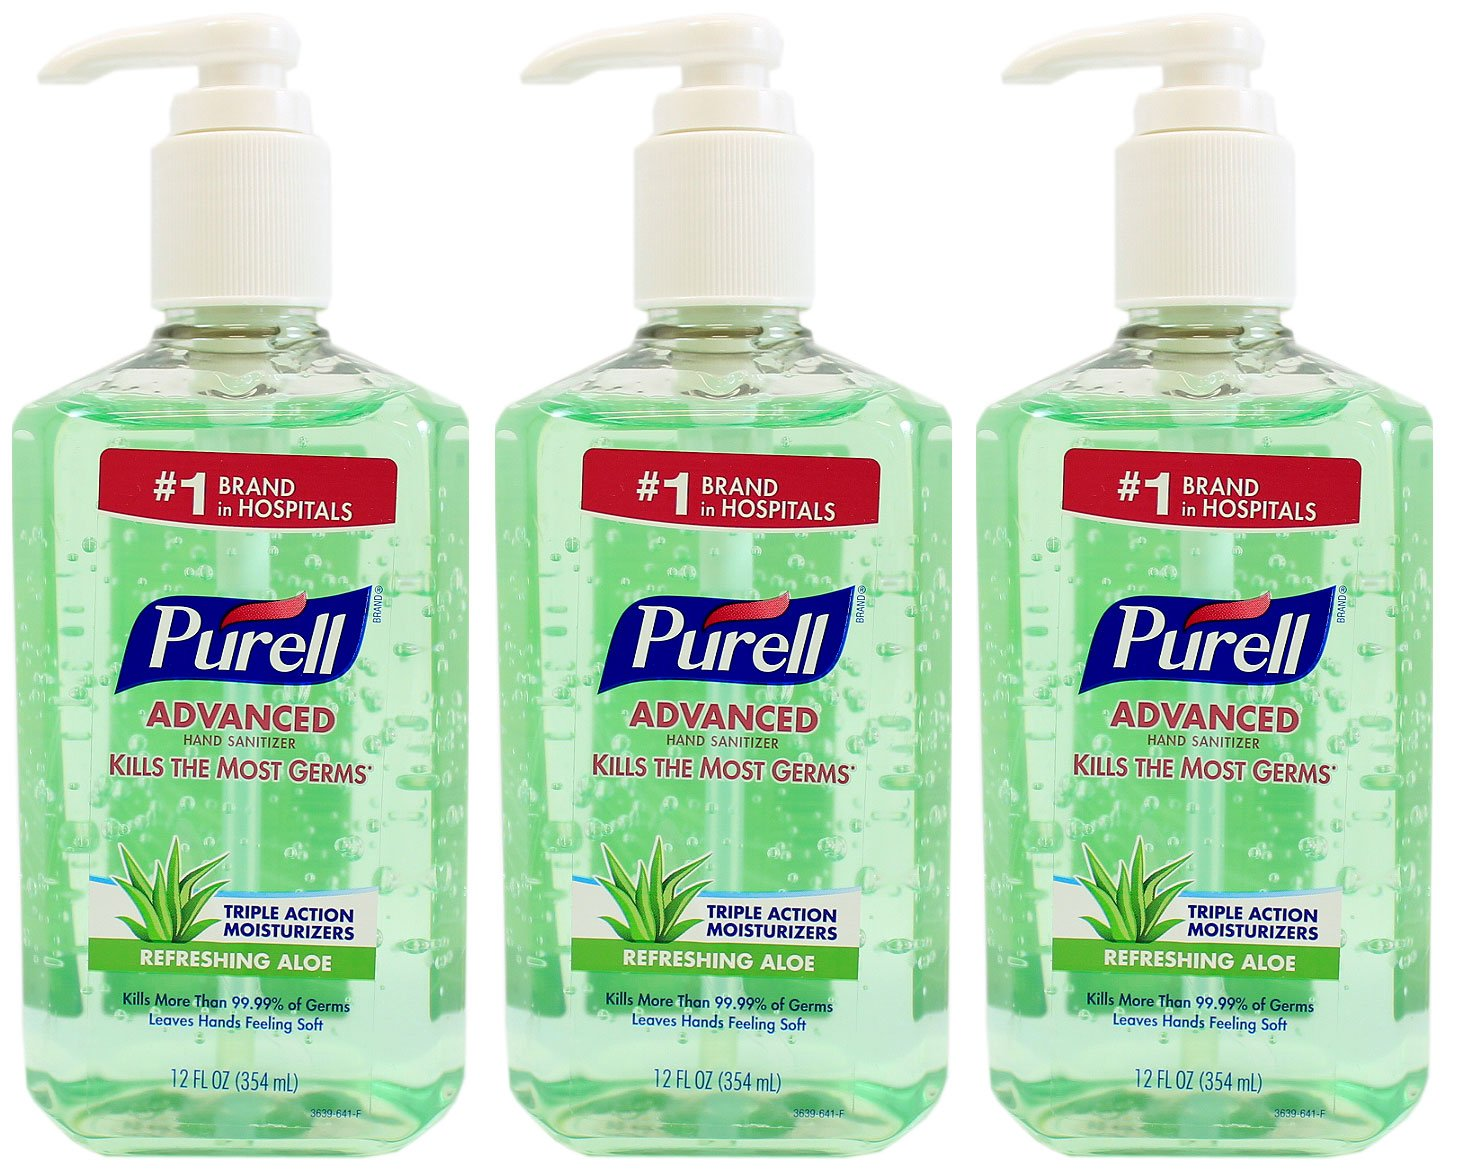 Purell Advanced Instant Hand Sanitizer with Aloe 12 oz Bottle - Pack of 3